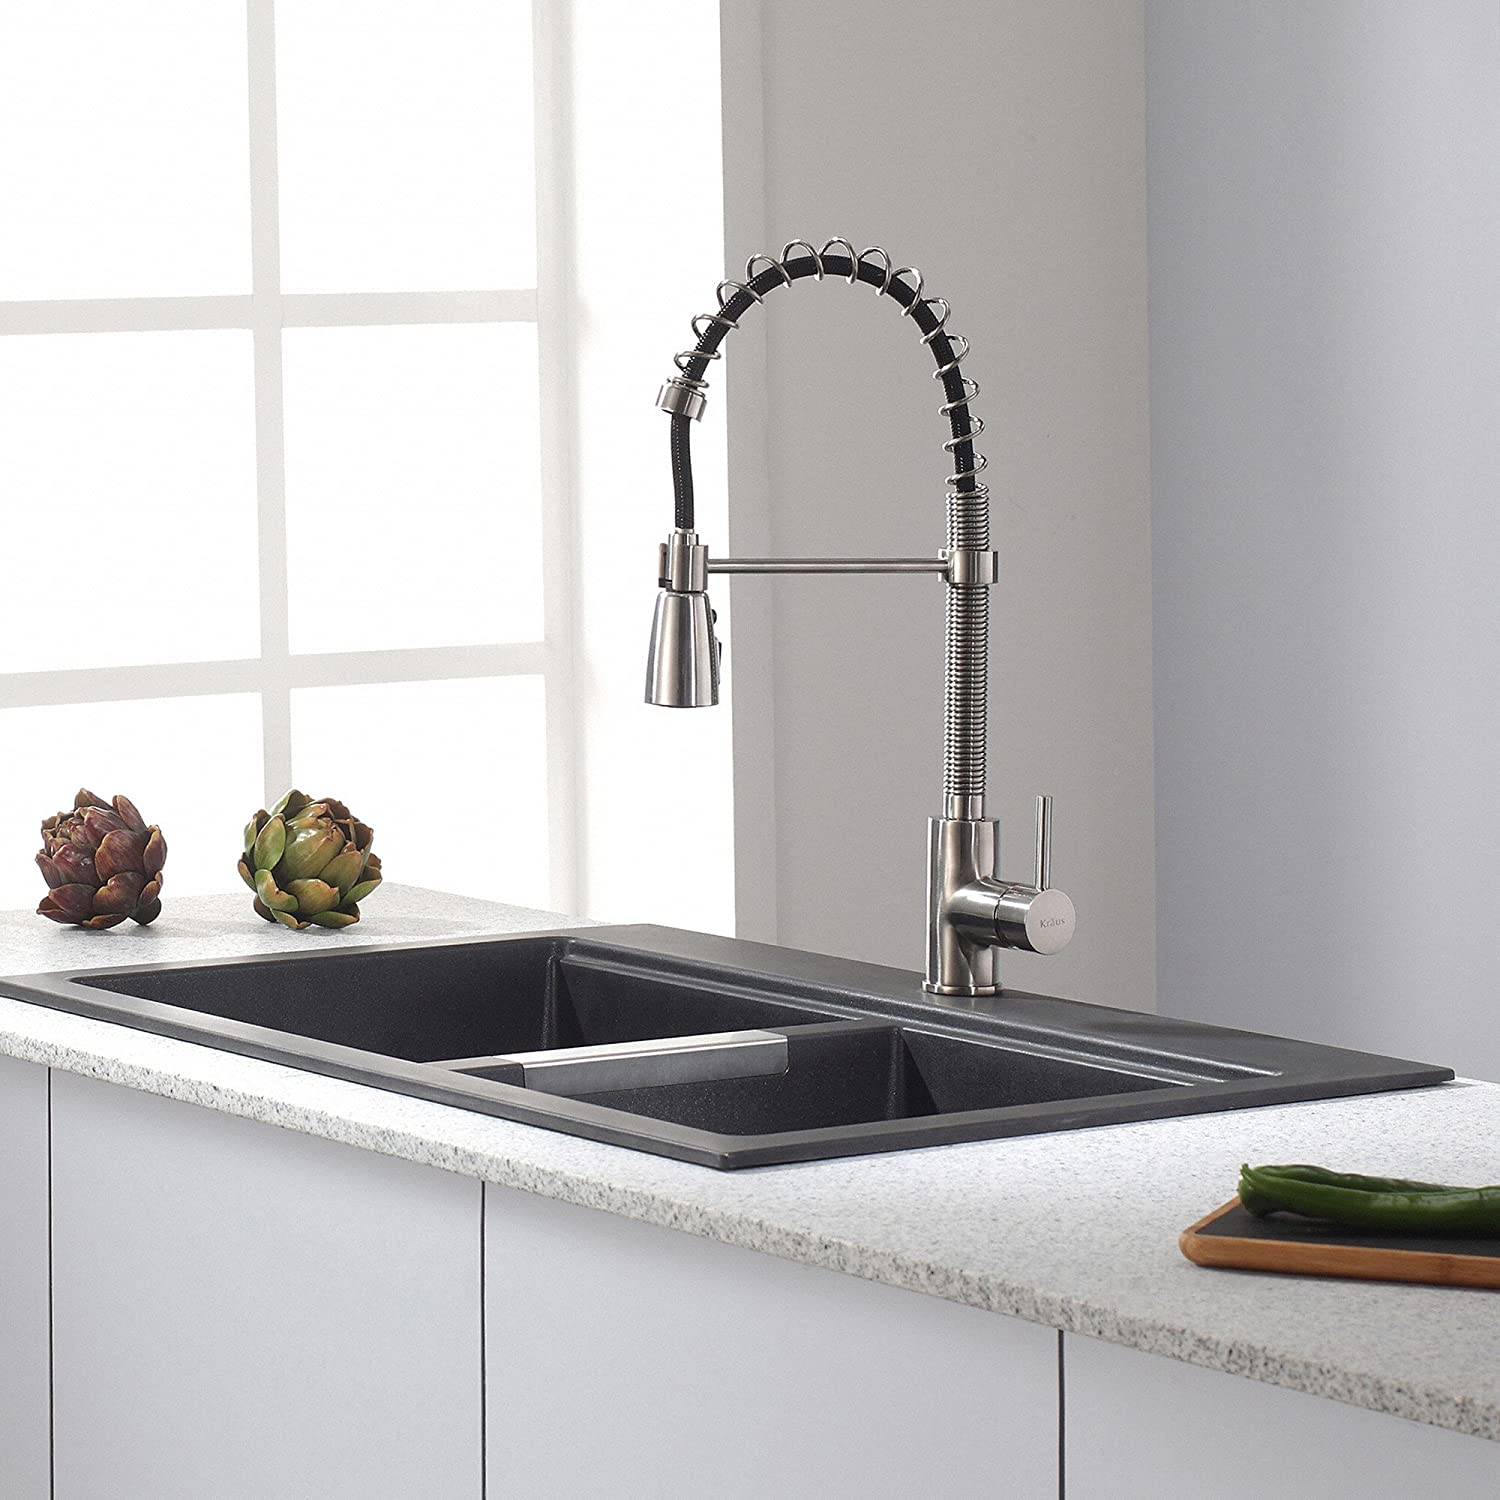 size tara marble designs bronze design down stainless full steel pull by room sieger kitchen back black countertops double faucet chrome single space holes faucets awesome tiles rectangular contemporary of